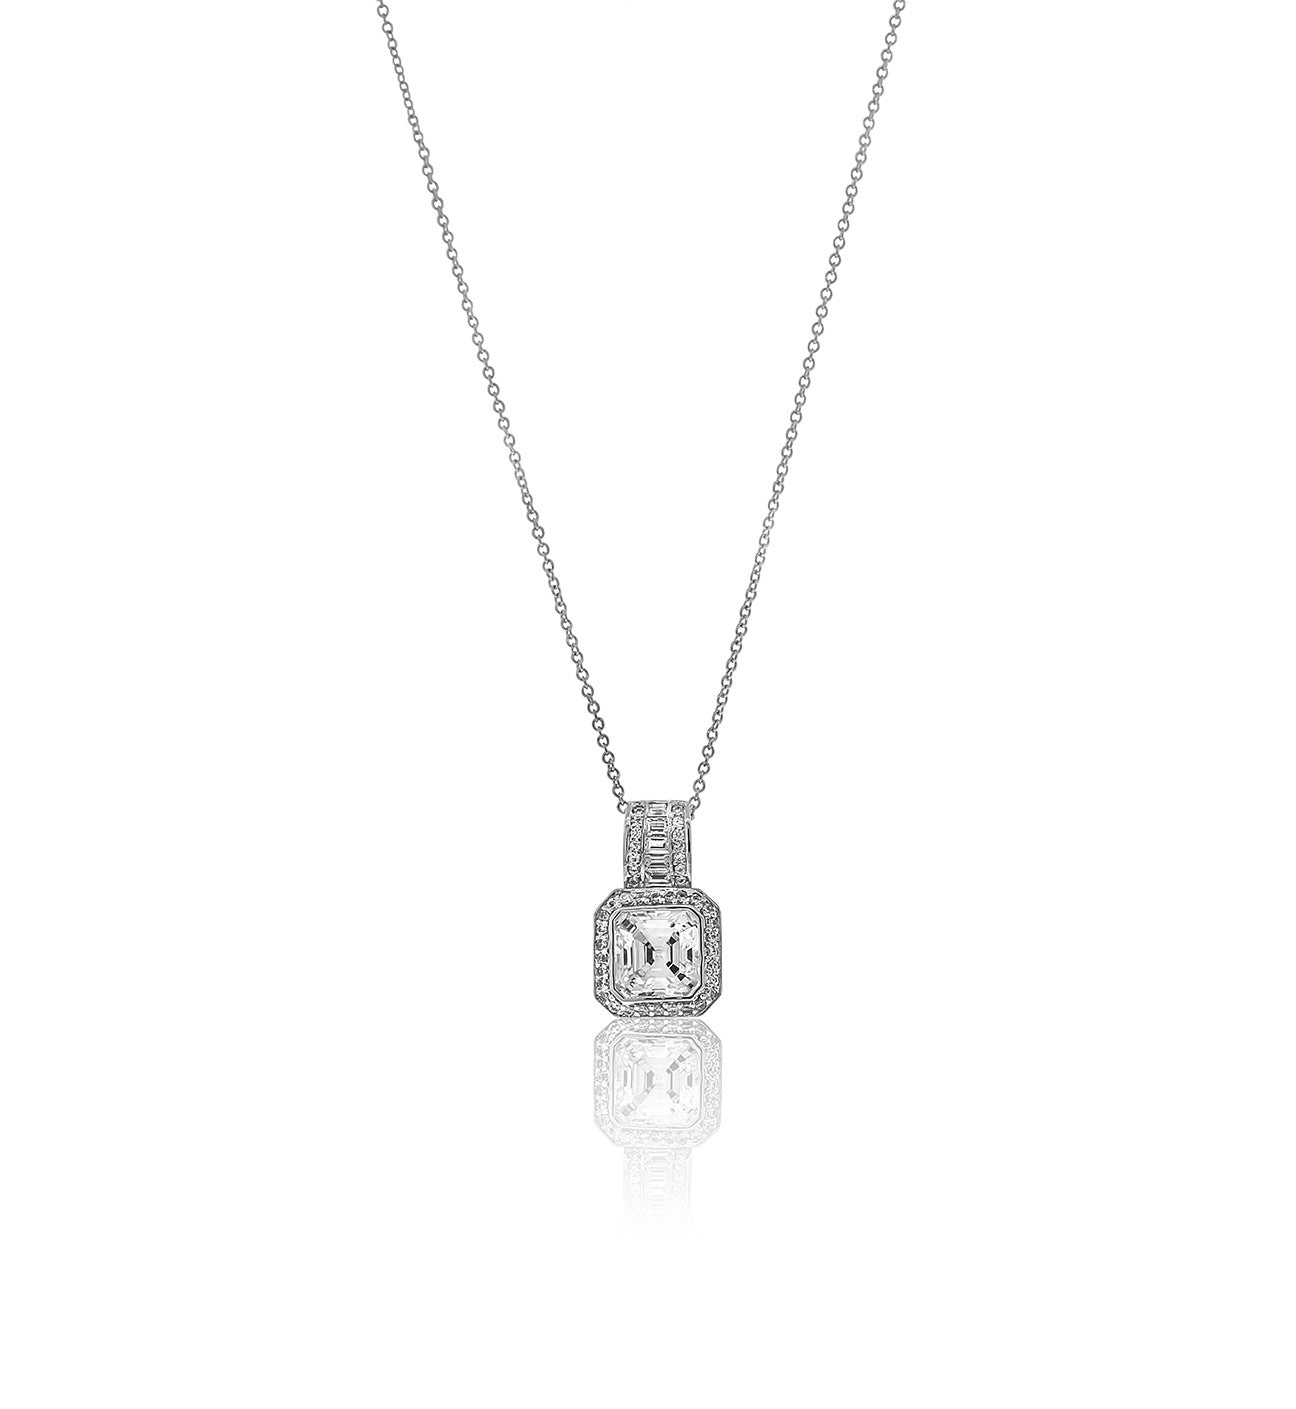 necklace jewelry in all solitaire solitare diamond image gold itm white pendant is set colorless loading